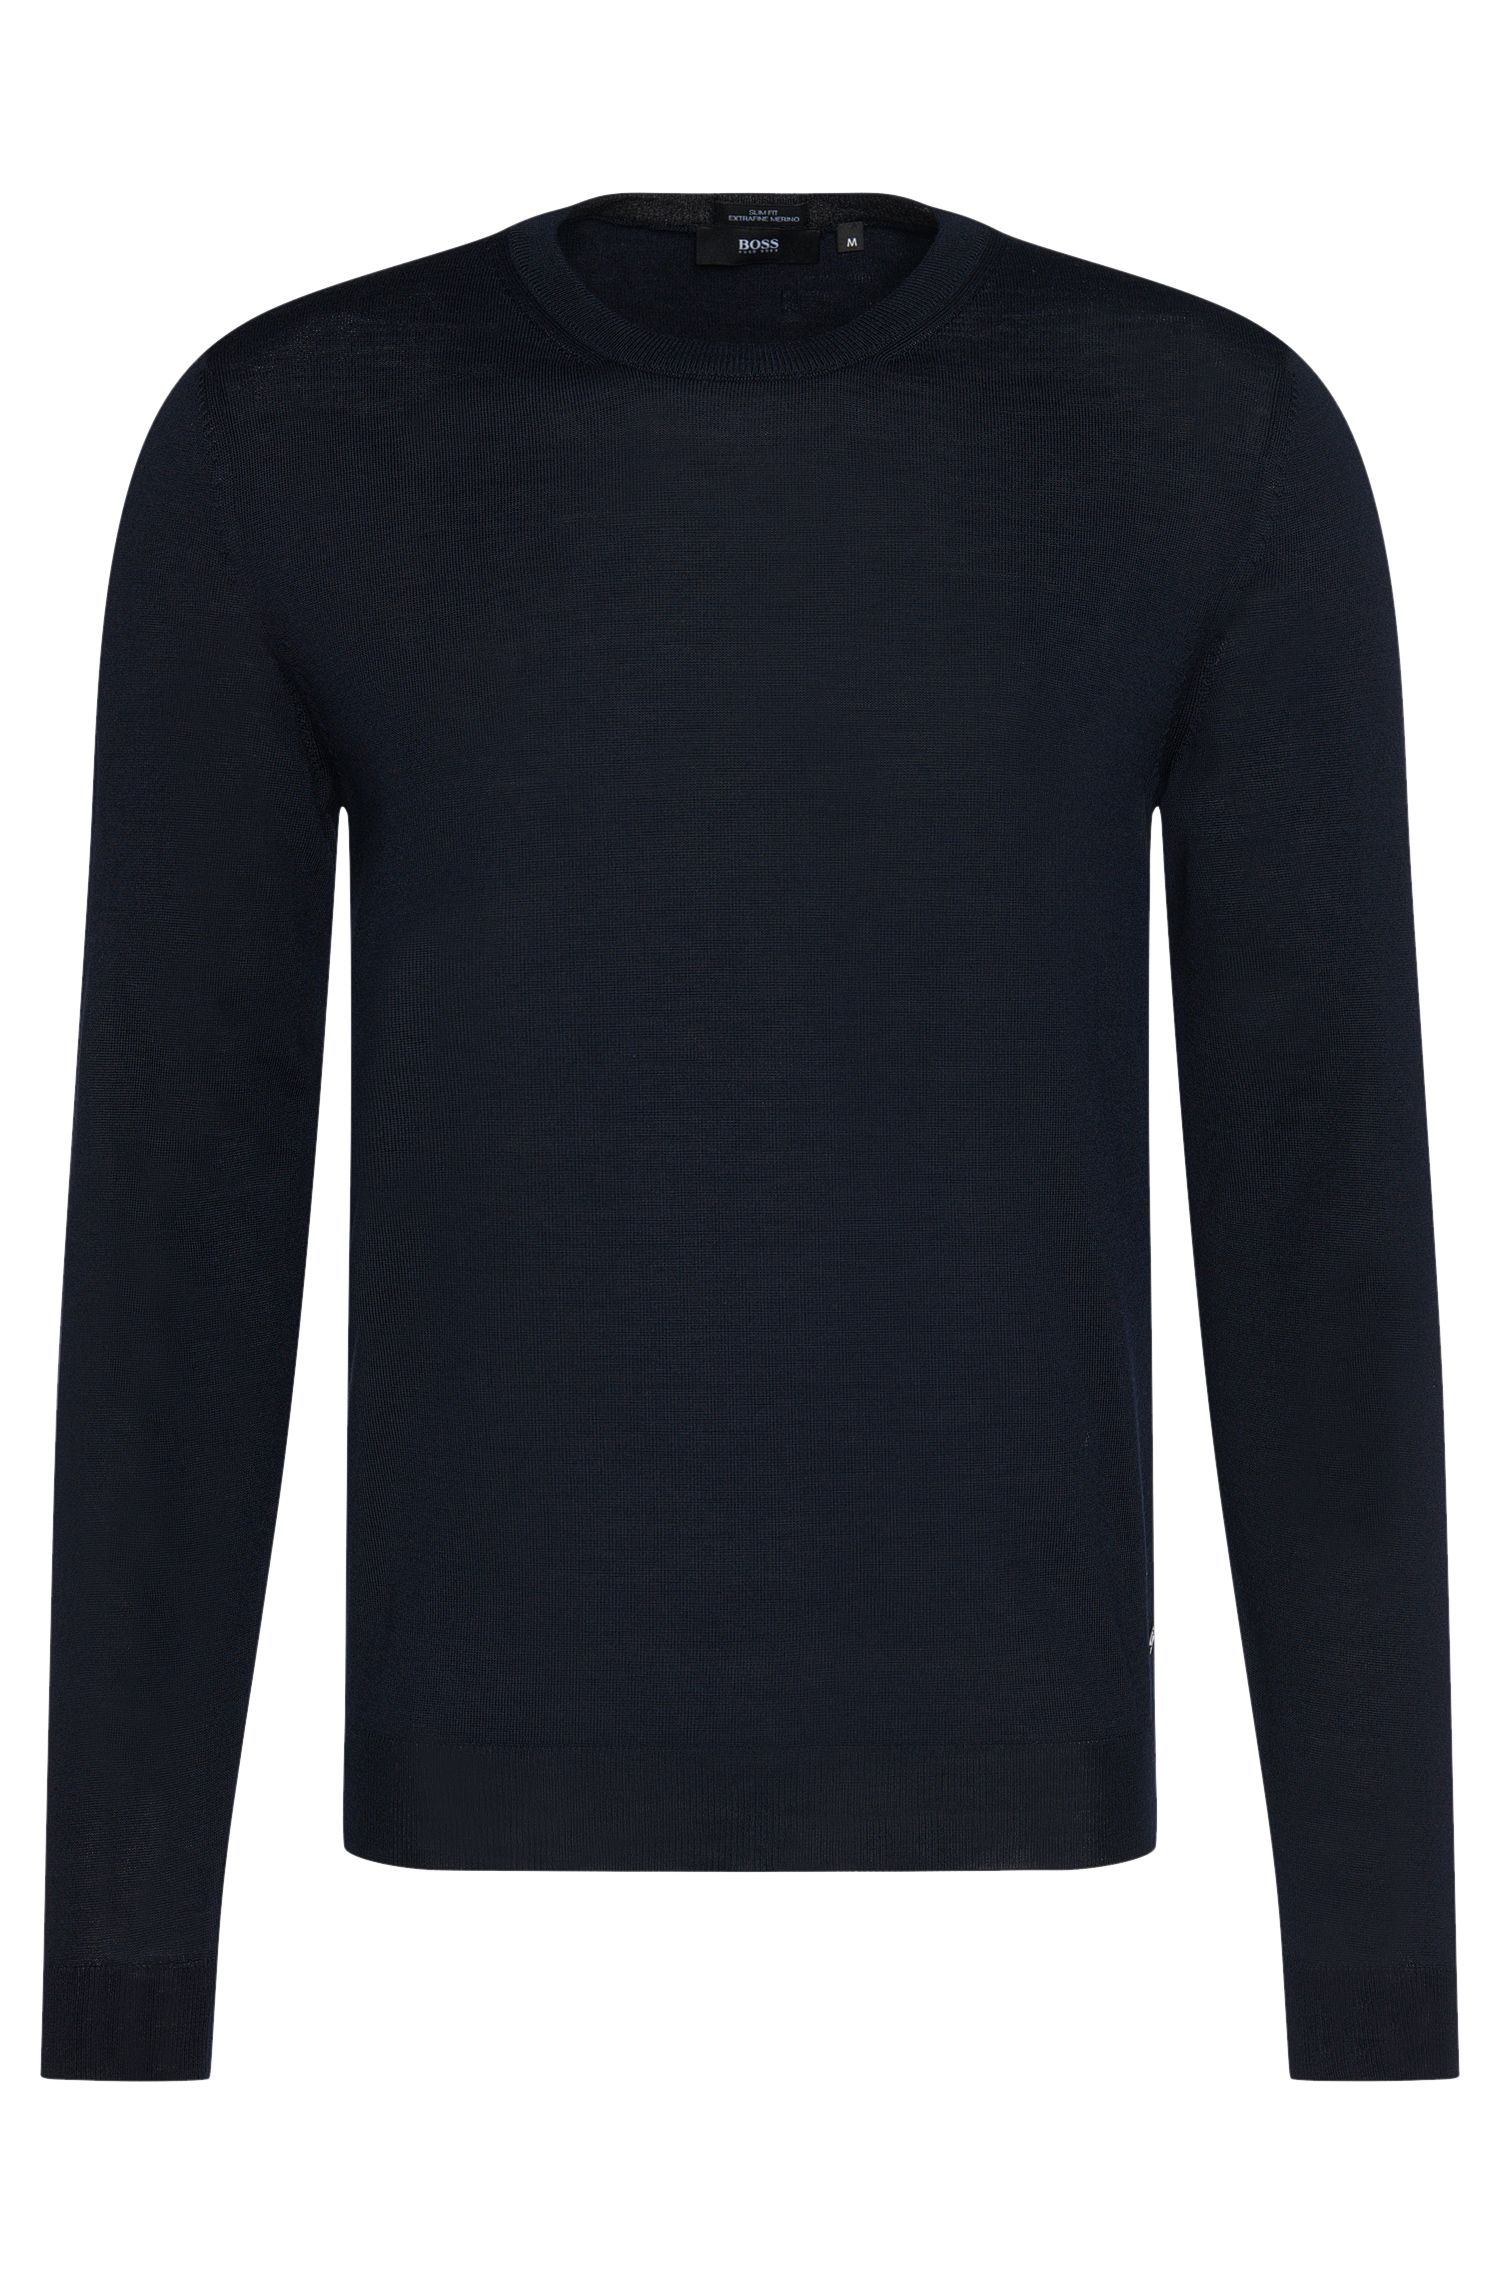 'Leno-B' | Merino Virgin Wool Sweater